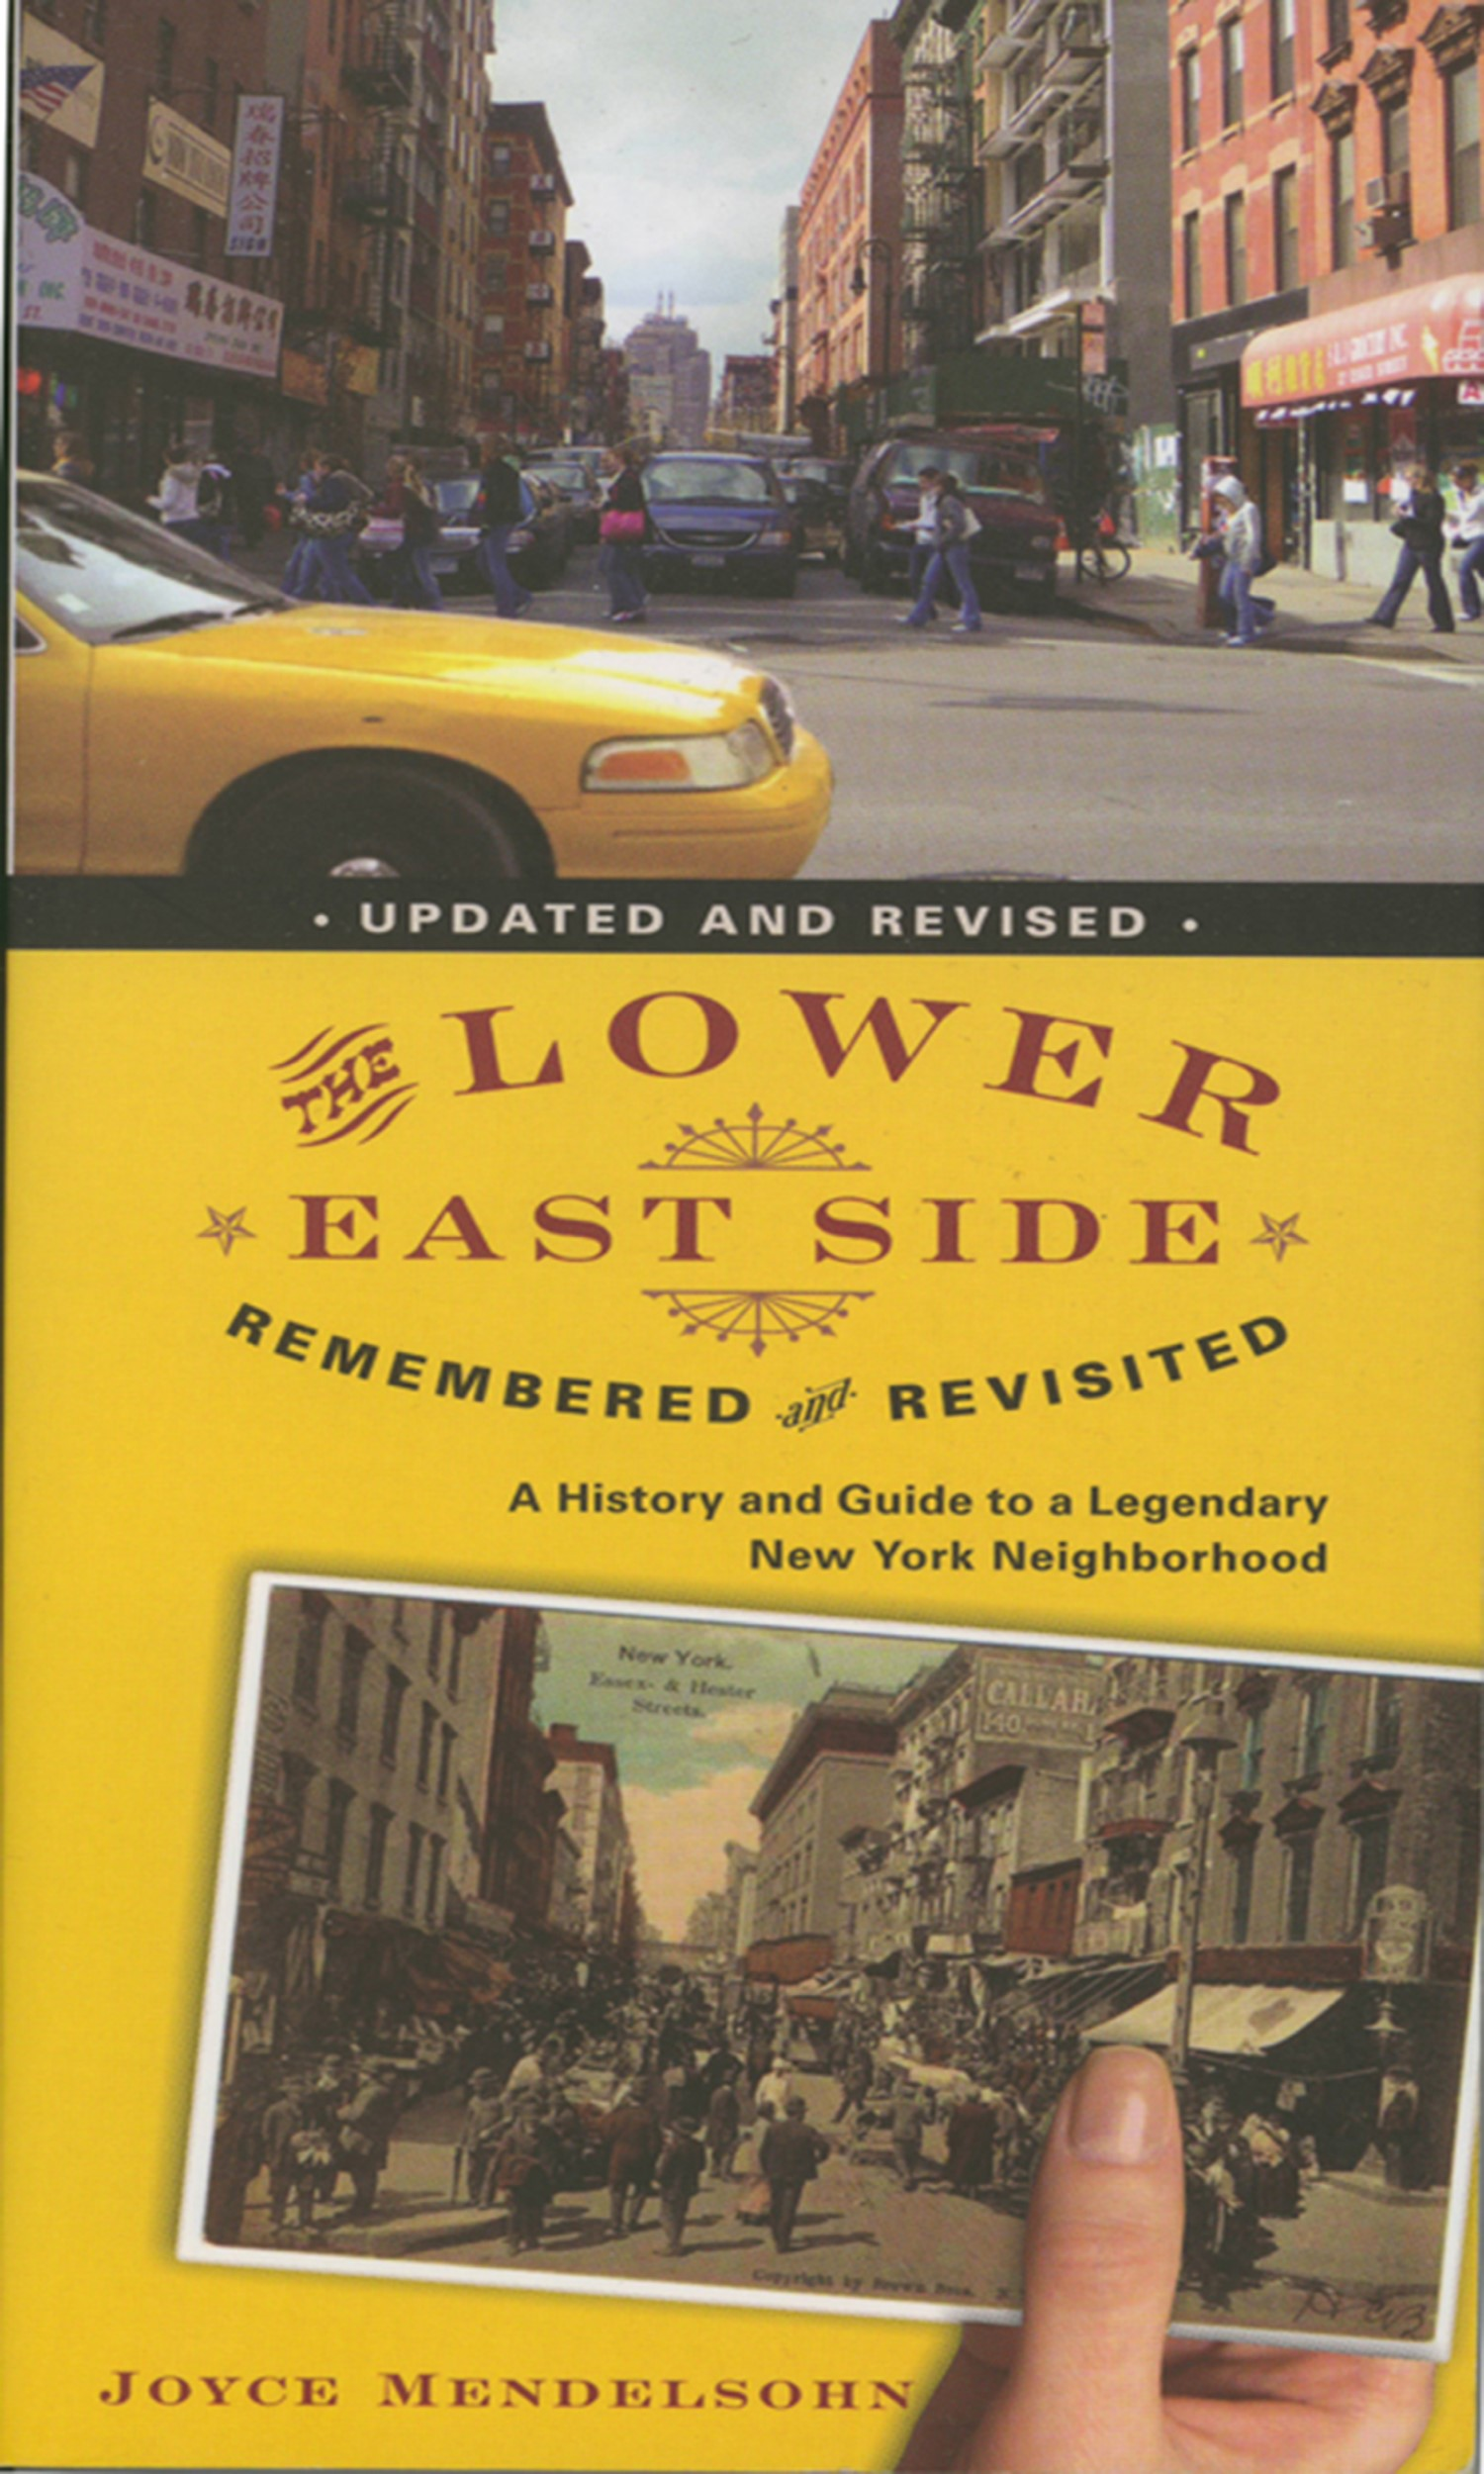 the-lower-east-side-remembered-and-revisited.jpg